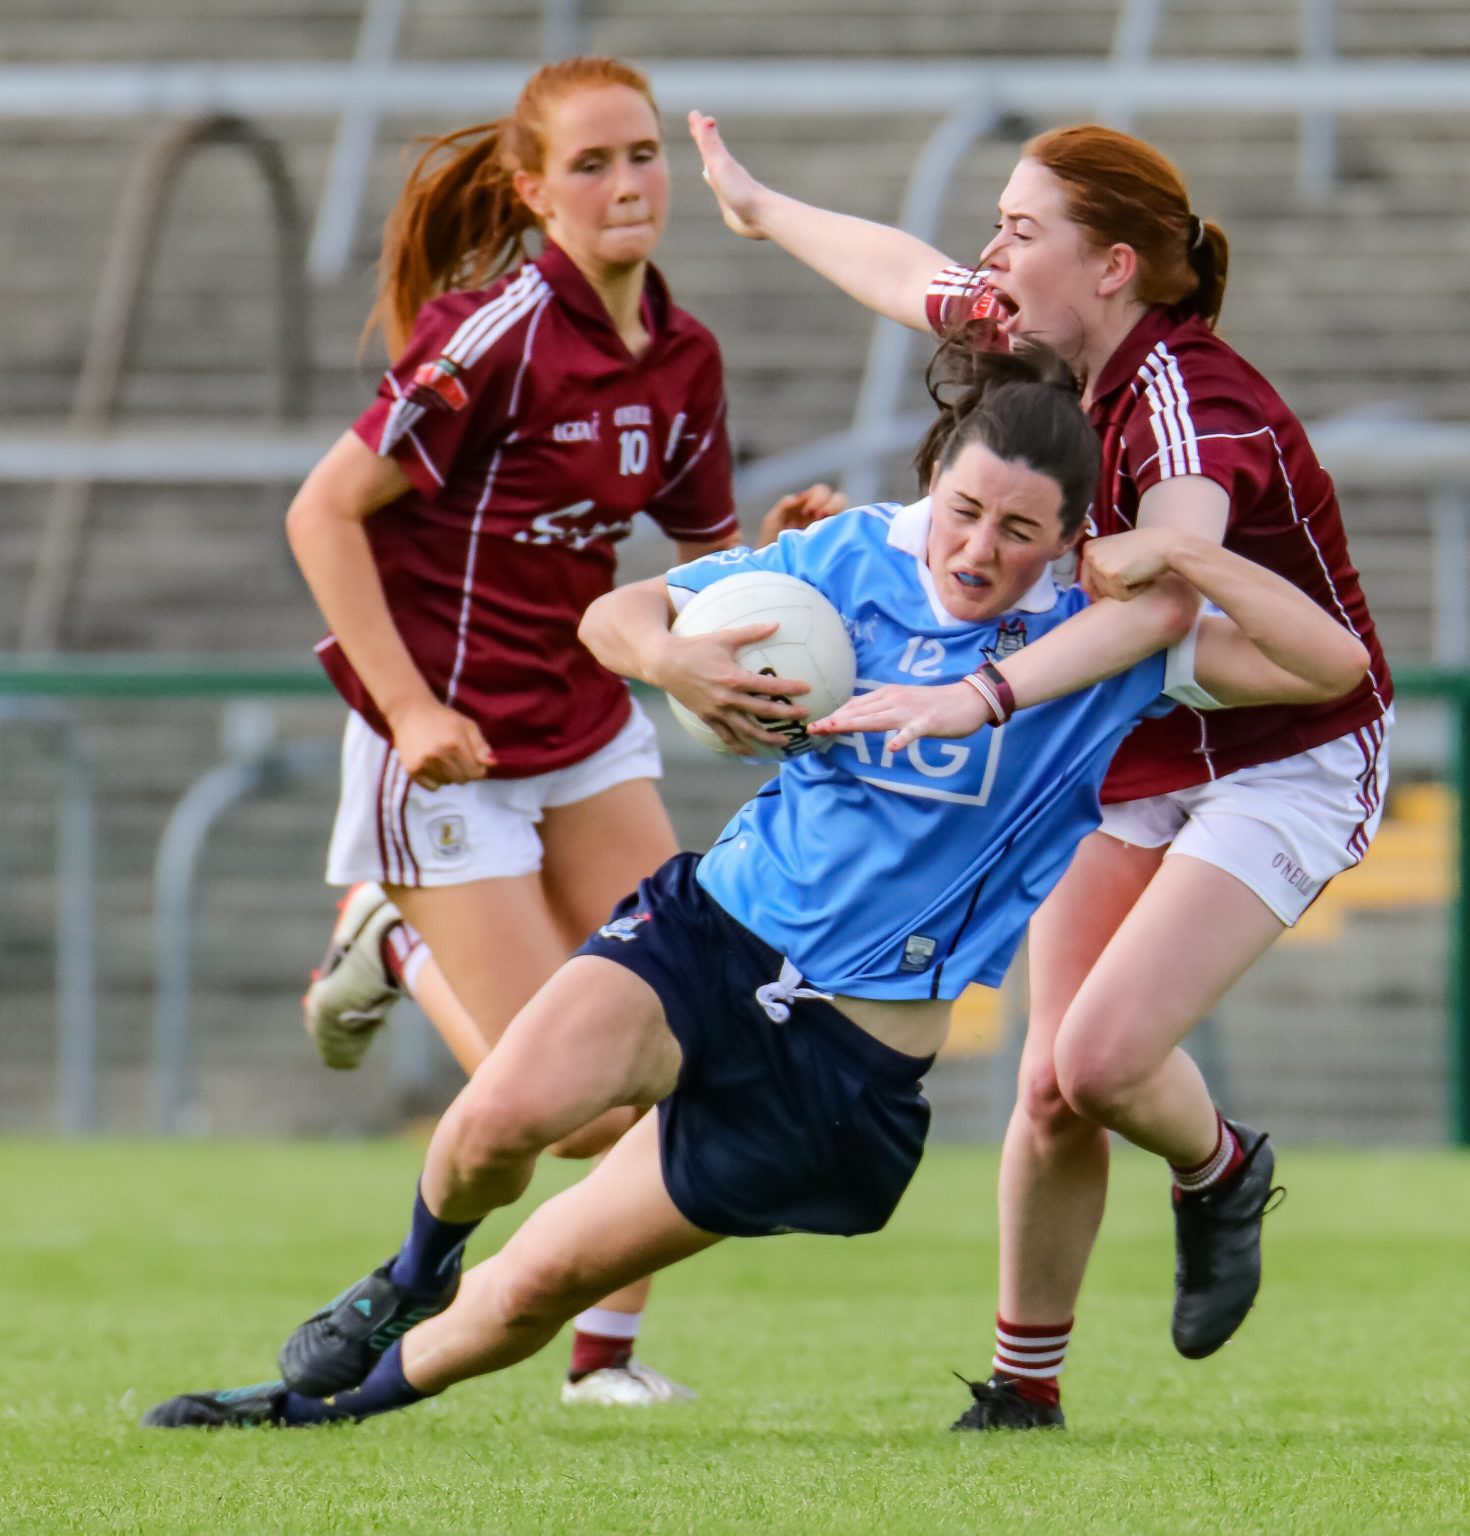 Dublin Ladies footballer in a sky blue jersey and navy shorts is fouled by a Galway player in a maroon jersey and white shorts Dublin won the game and qualified for their fifth straight TG4 All Ireland final